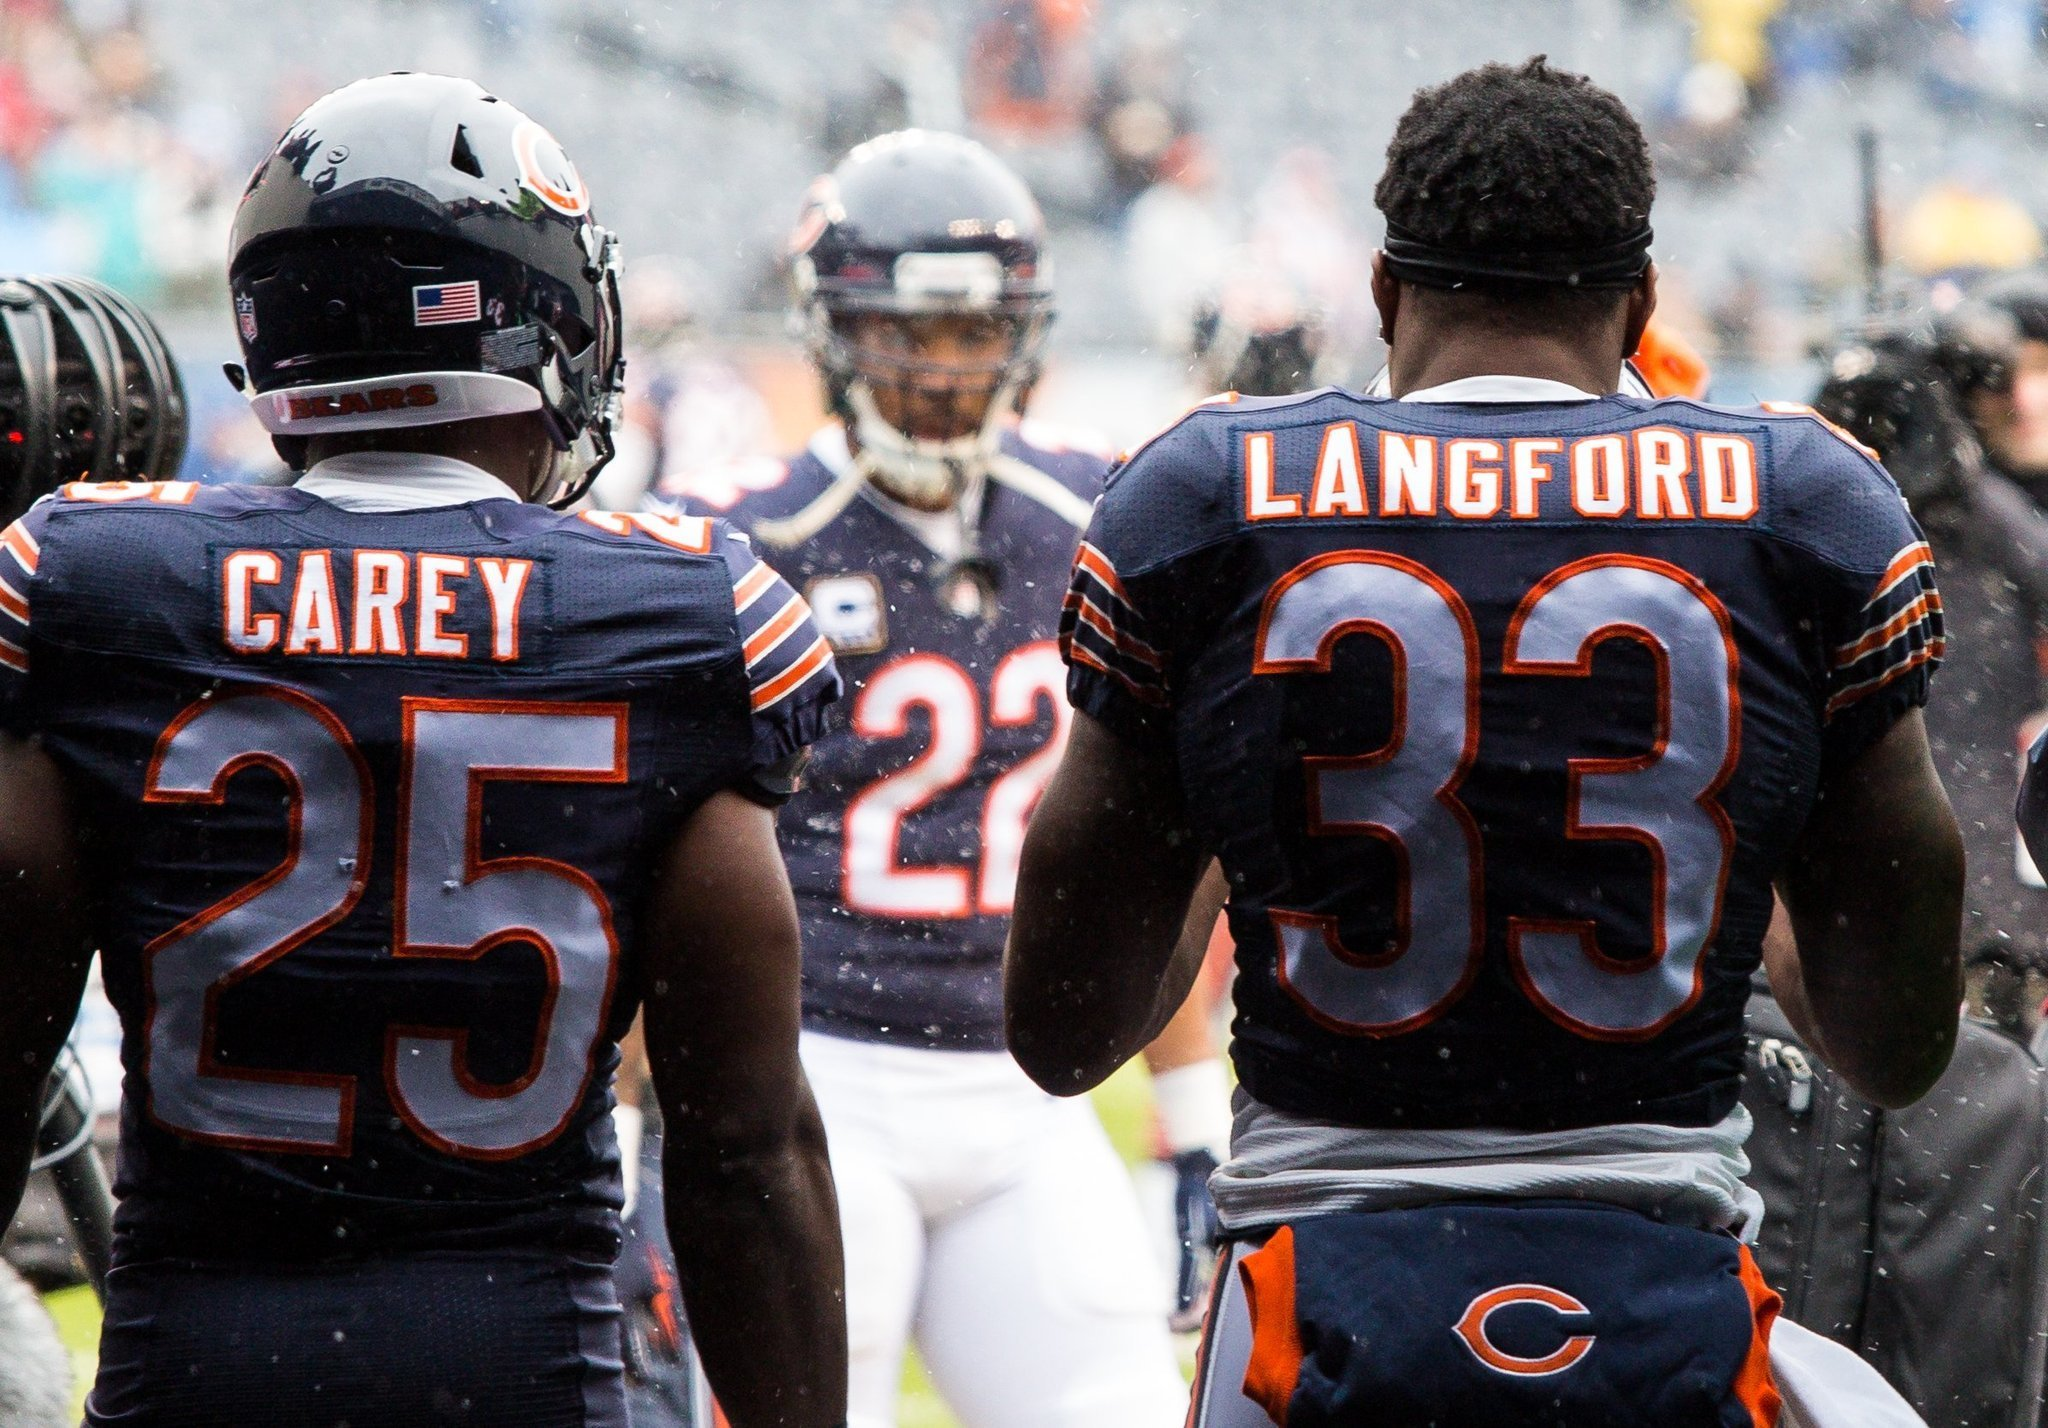 Ct-jeremy-langford-kadeem-carey-bears-spt-0803-20160802